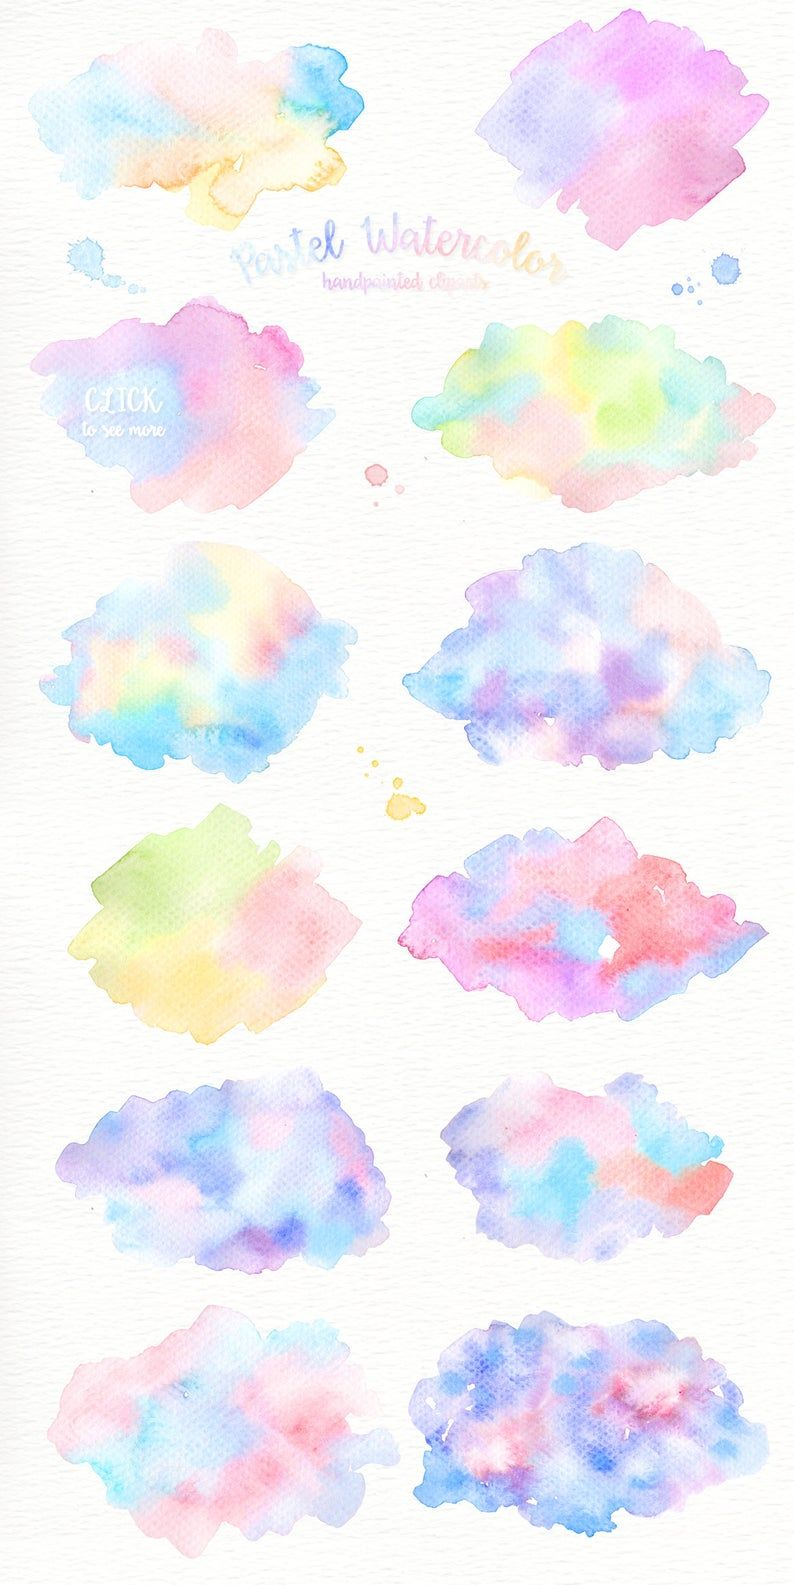 Pastel Watercolor Splashes Clipart Hand Painted Brush Strokes Unicorn Abstract Watercolour Background Pink Brush Strokes Invitation Watercolor Splash Pastel Watercolor Splash Images